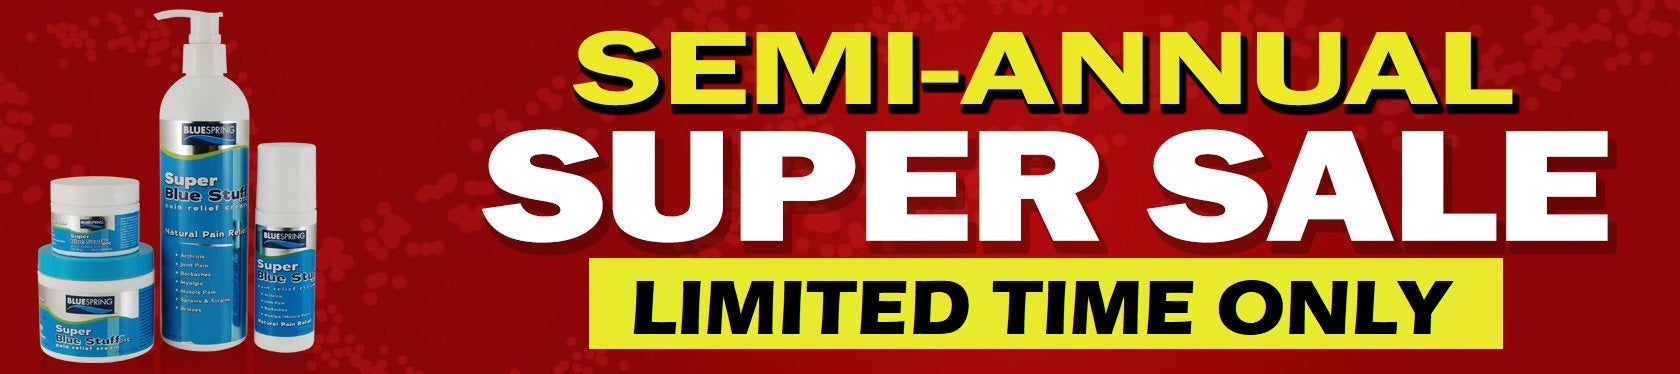 Semi-Annual Super Sale from BLUE SPRING - Limited Time Only